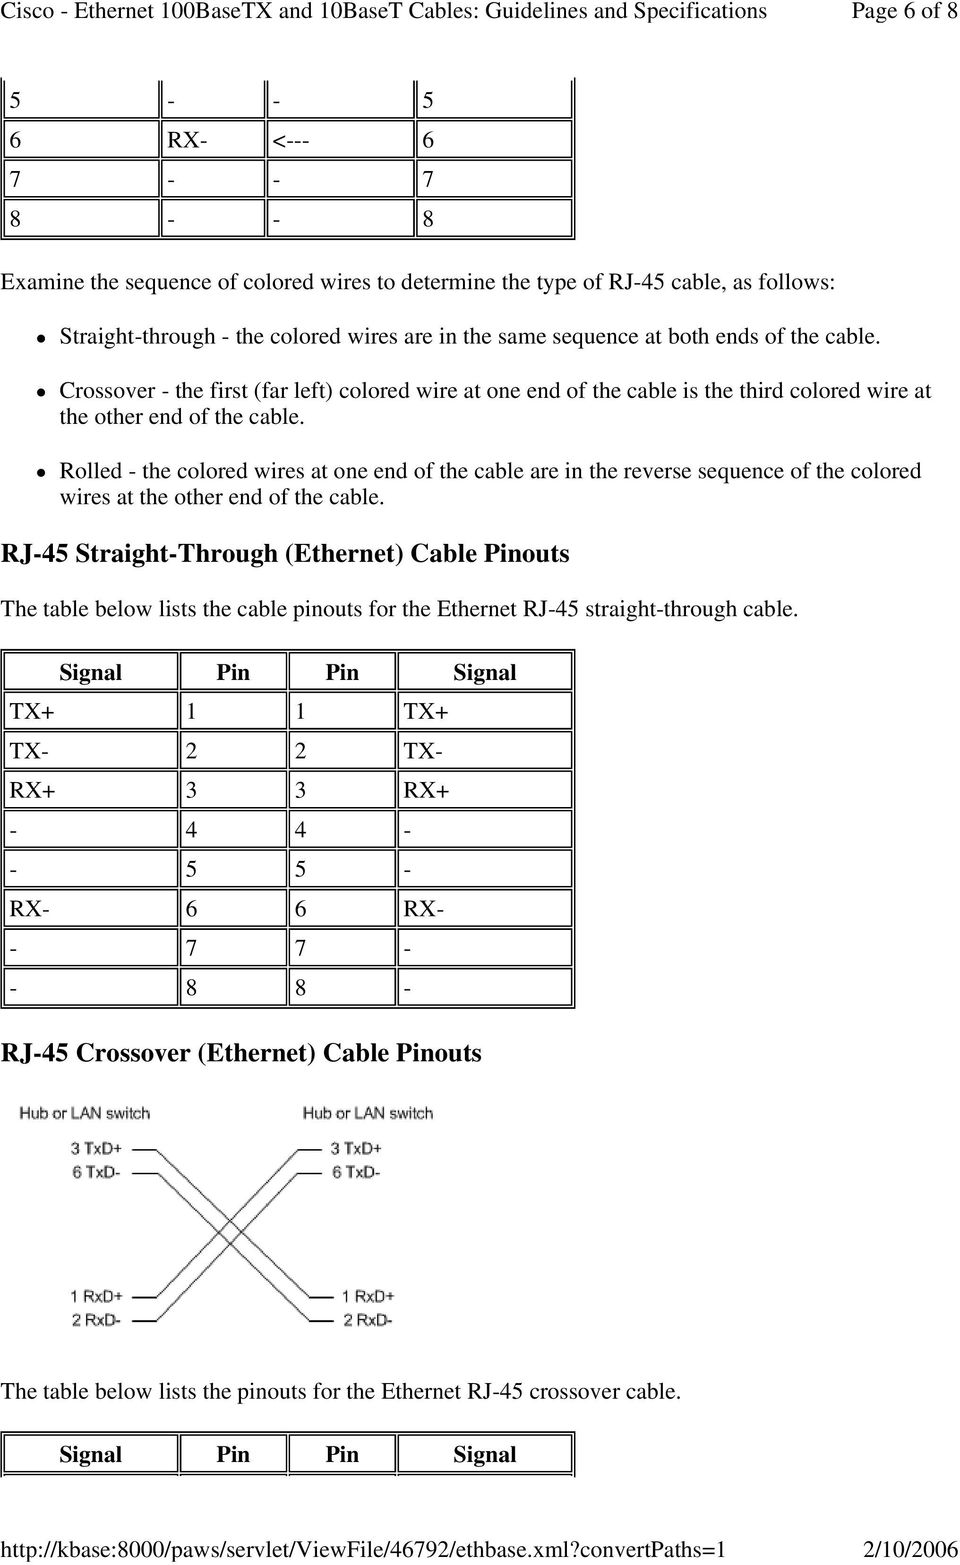 Cisco Rollover Cable Pinout Diagram This Black Is A Rolled The Colored Wires At One End Of Are In Reverse Sequence